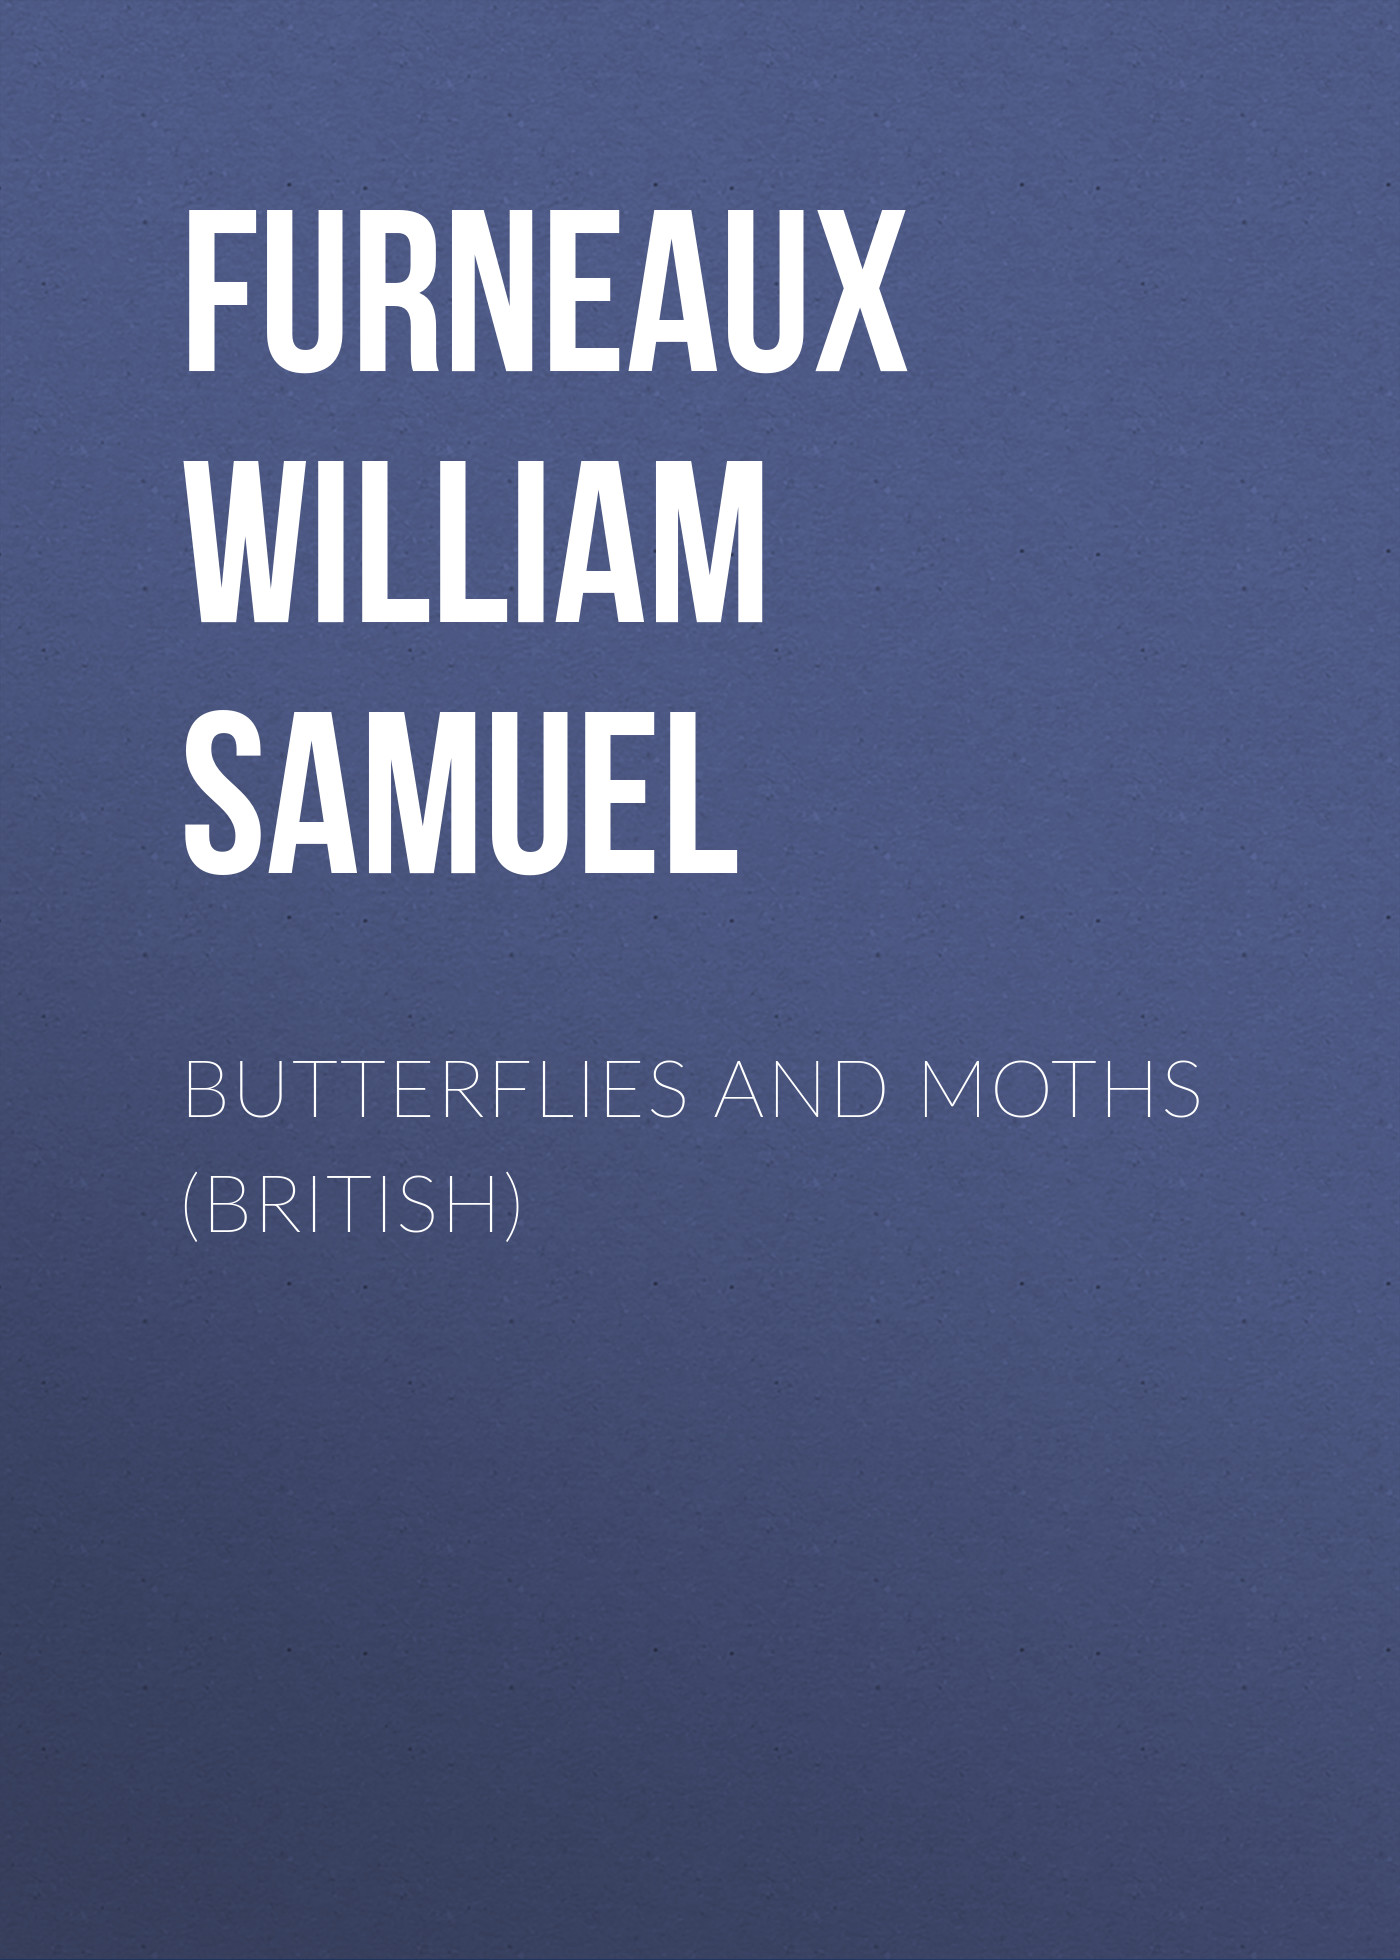 все цены на Furneaux William Samuel Butterflies and Moths (British)